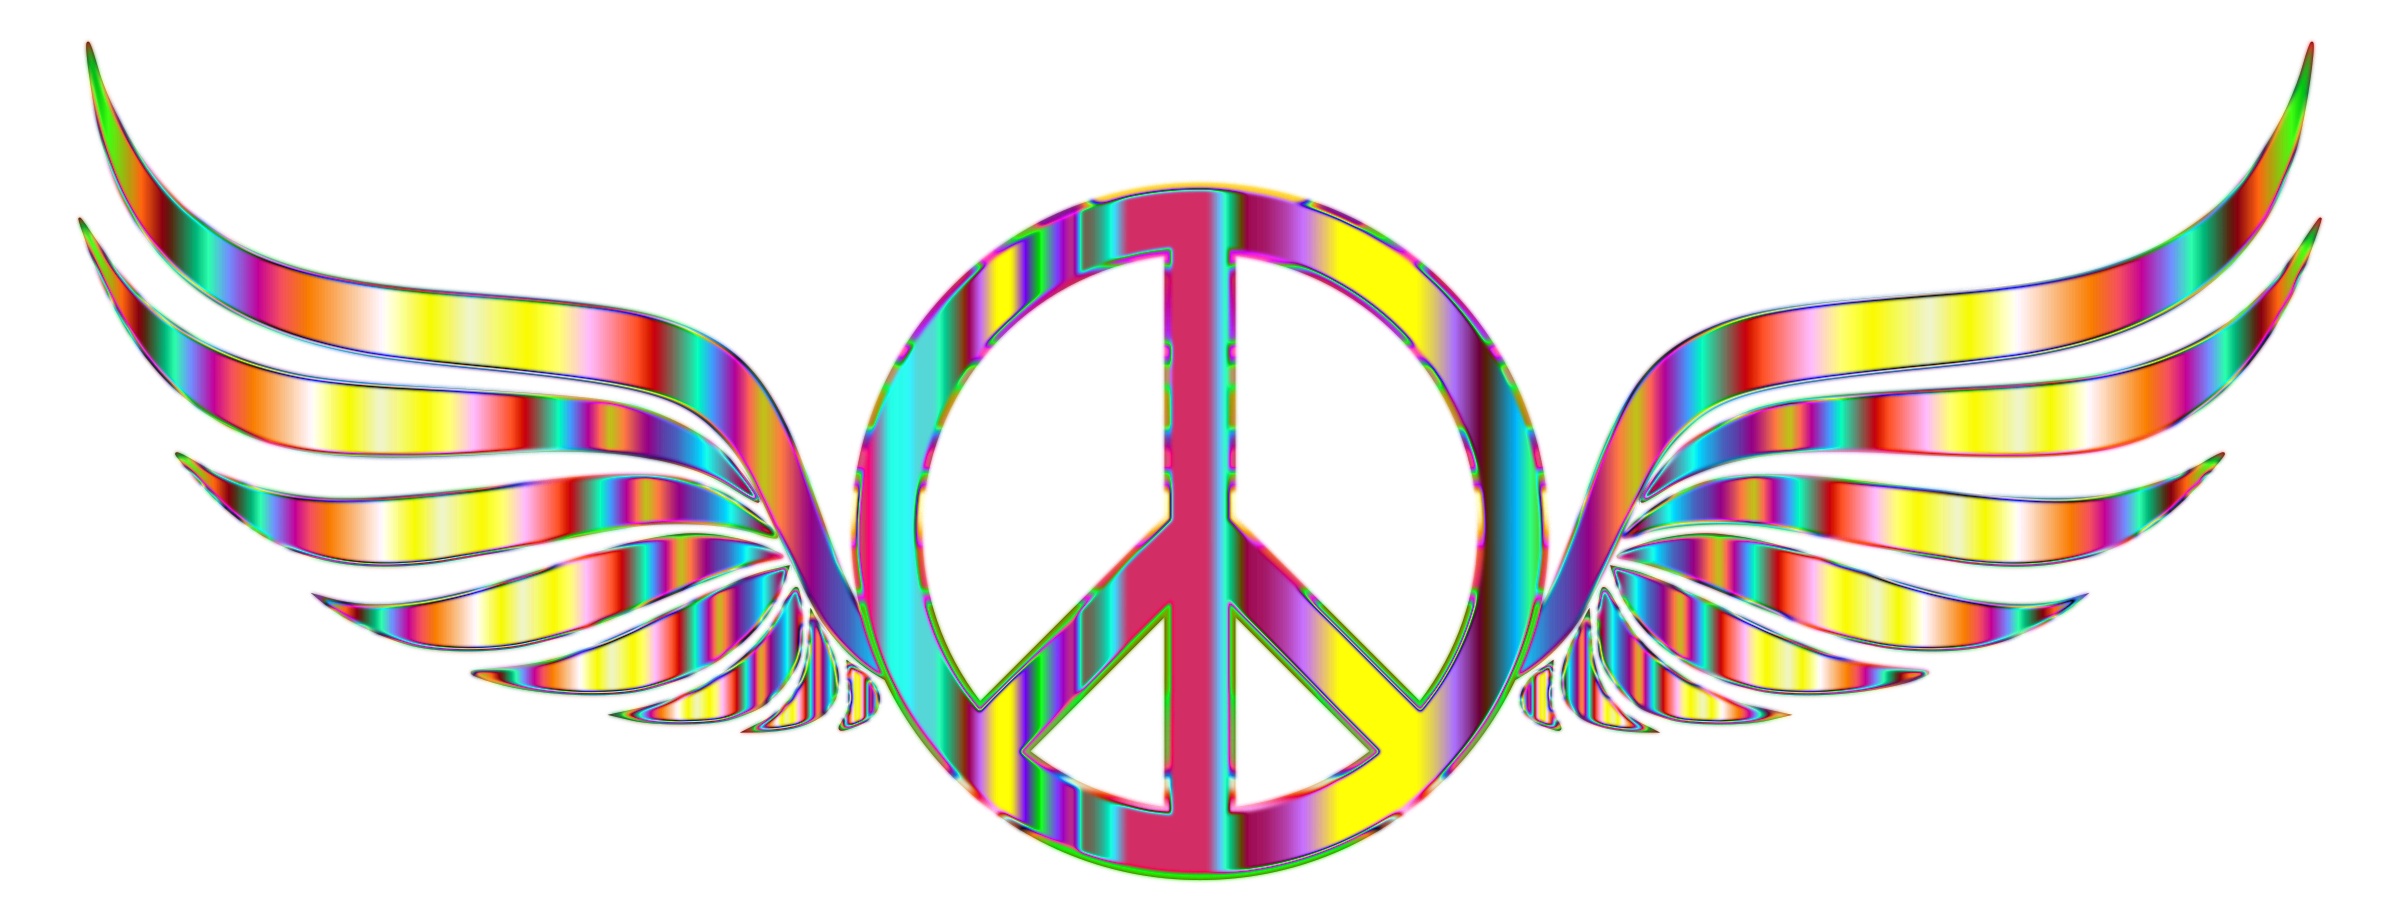 Gold Peace Sign Wings Psychedelic No Background by GDJ